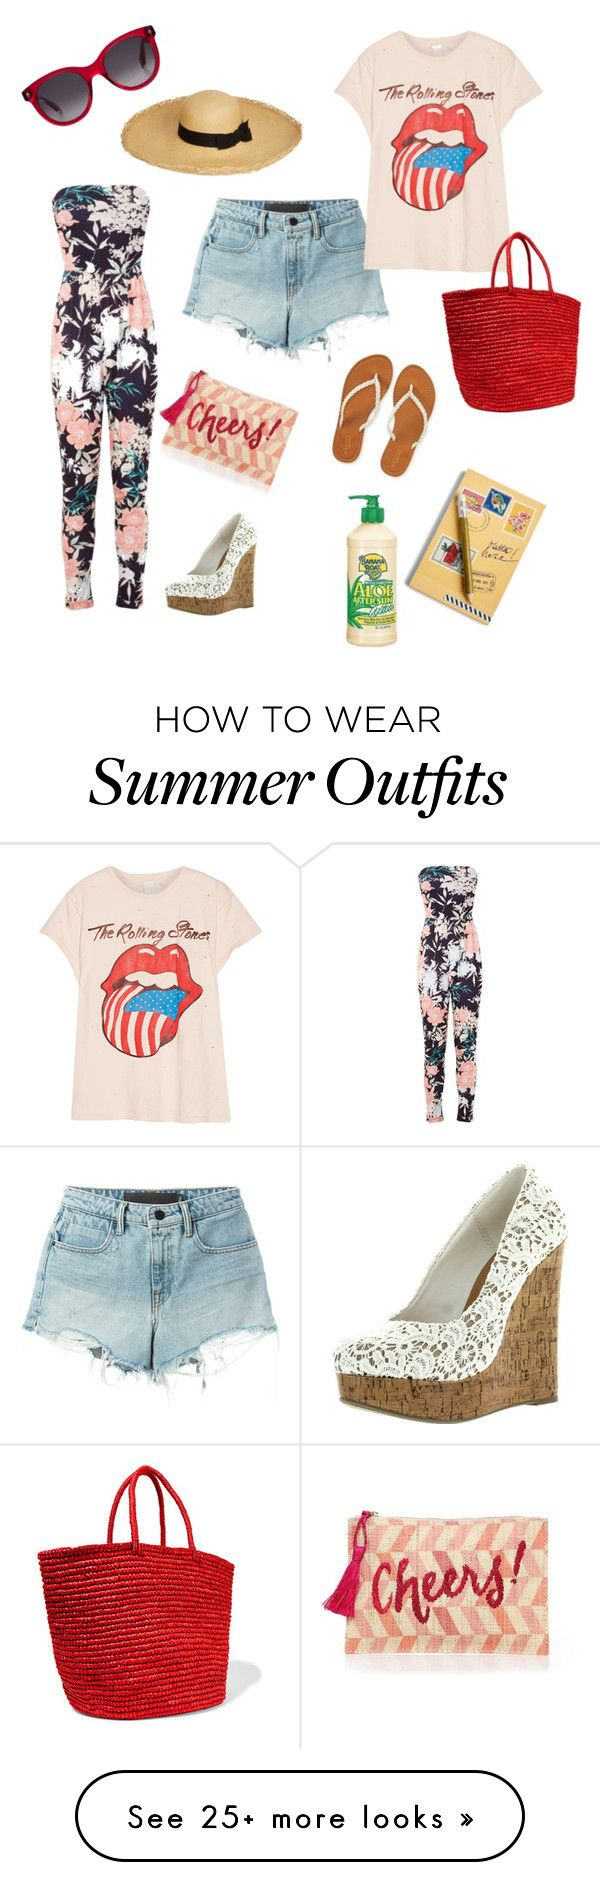 """Ready for Cuba!"" by martina-b33 on Polyvore featuring Kayu, Miss Self..."